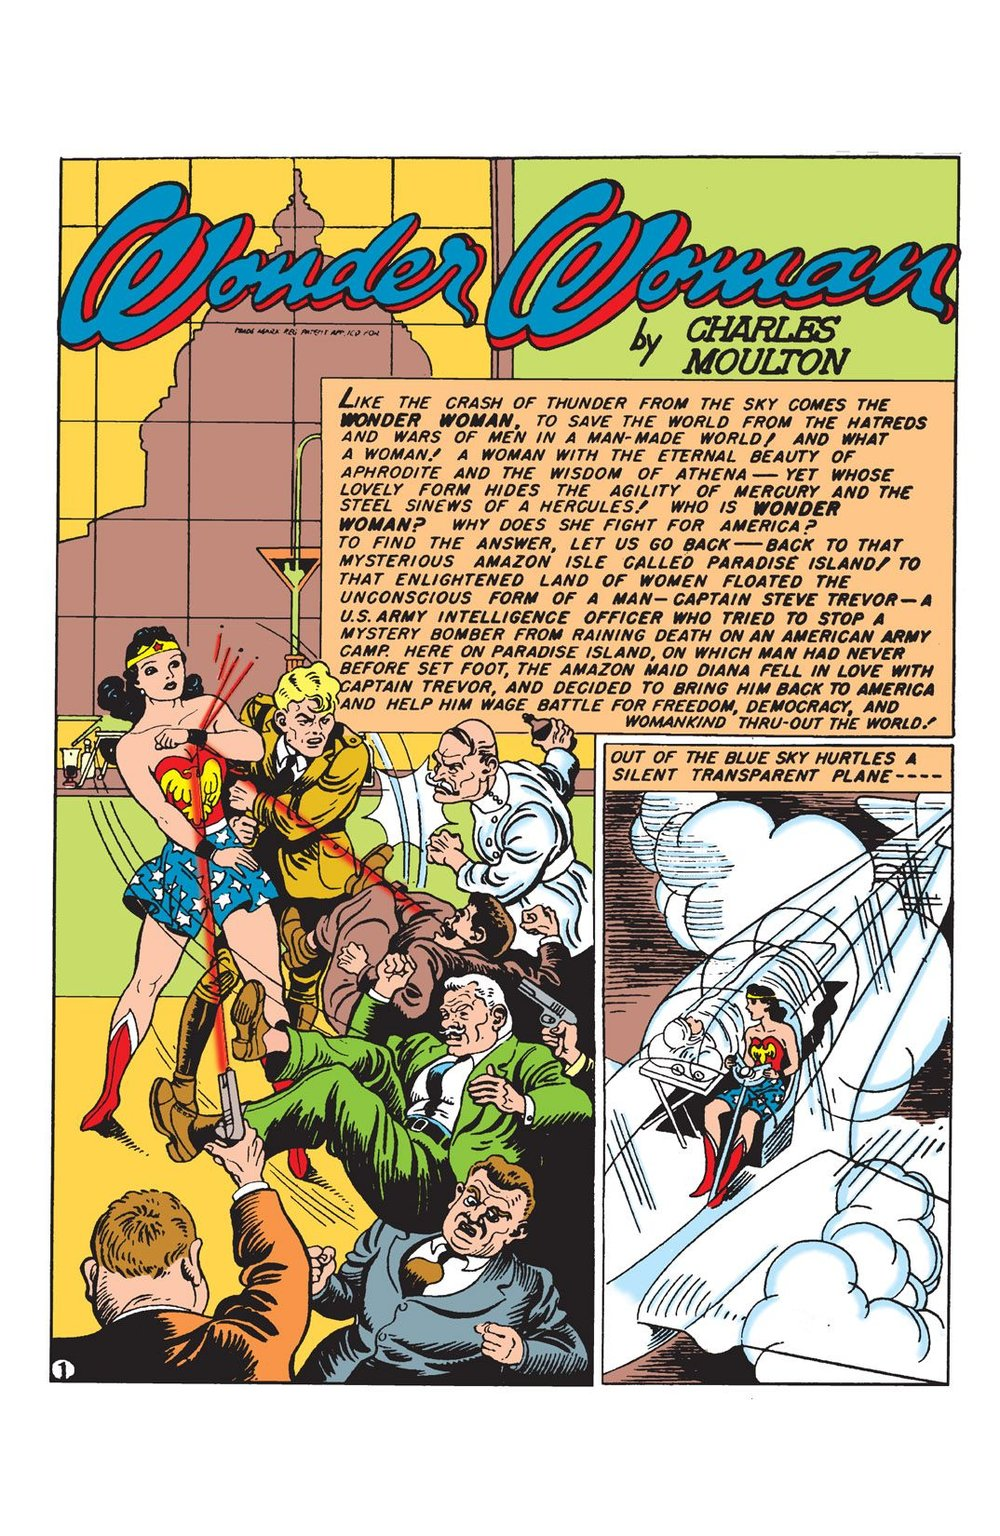 SENSATION COMICS #1 features a classic Harry Peter splash.